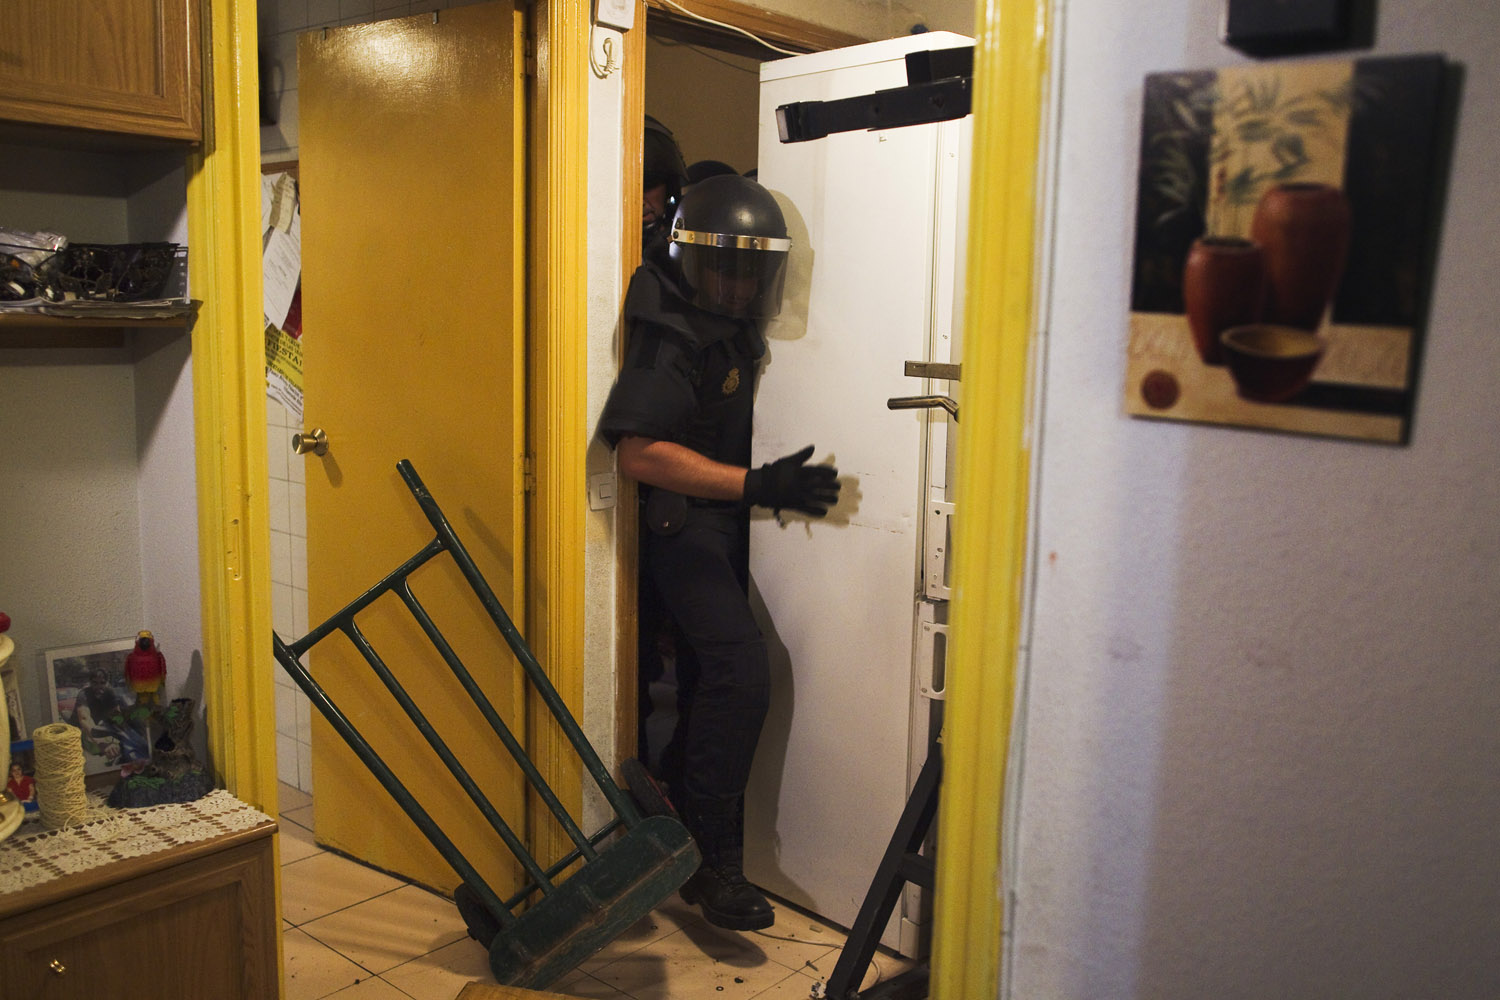 Sept. 25, 2013. Police remove the door and push away a refrigerator as they break into Maria Isabel Rodriguez Romero's apartment to evict her and her family in Madrid, Spain.